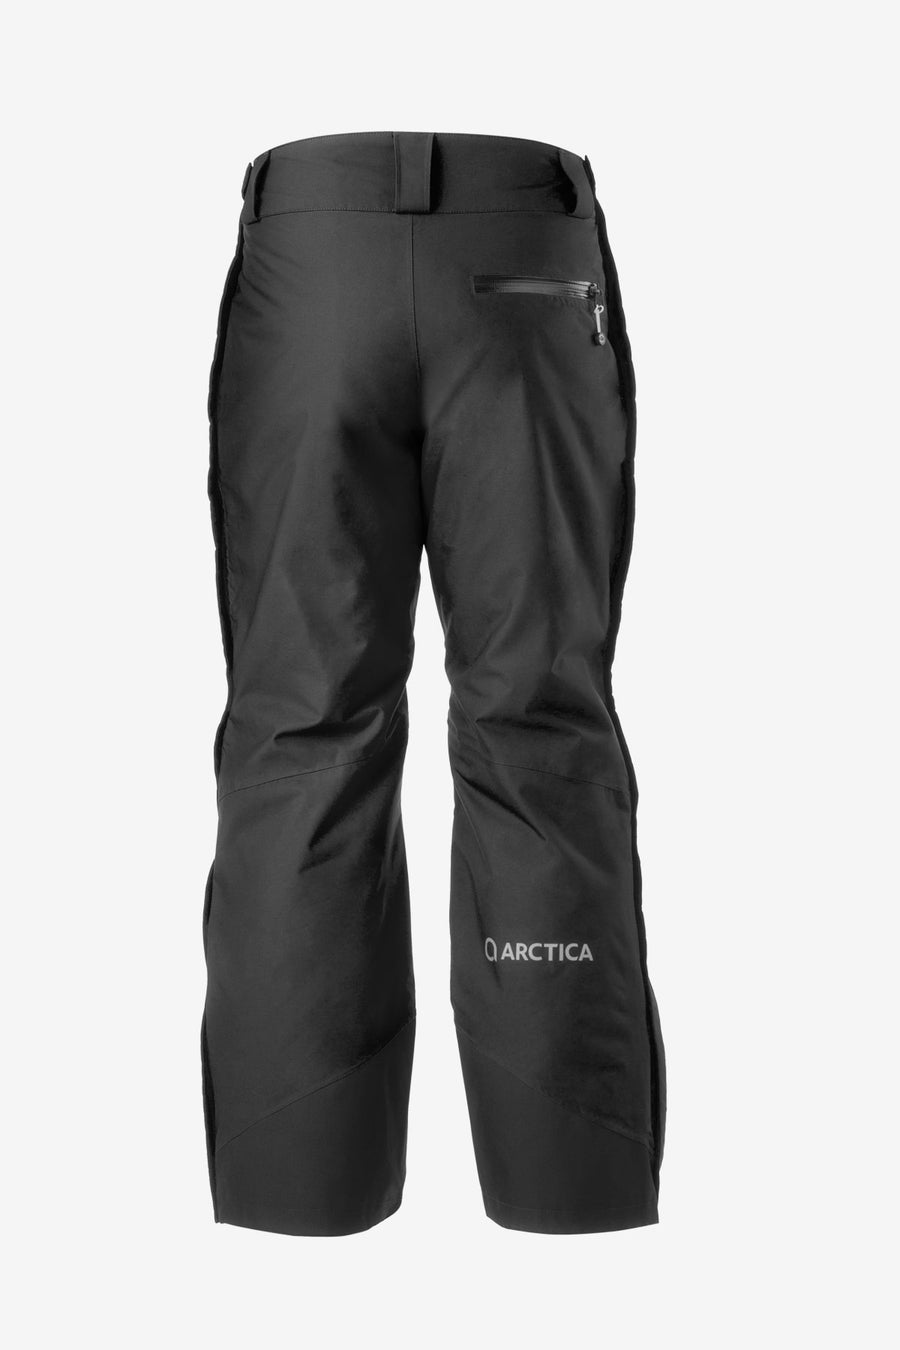 Arctica Youth Side Zip Ski Pants 2.0 - Black